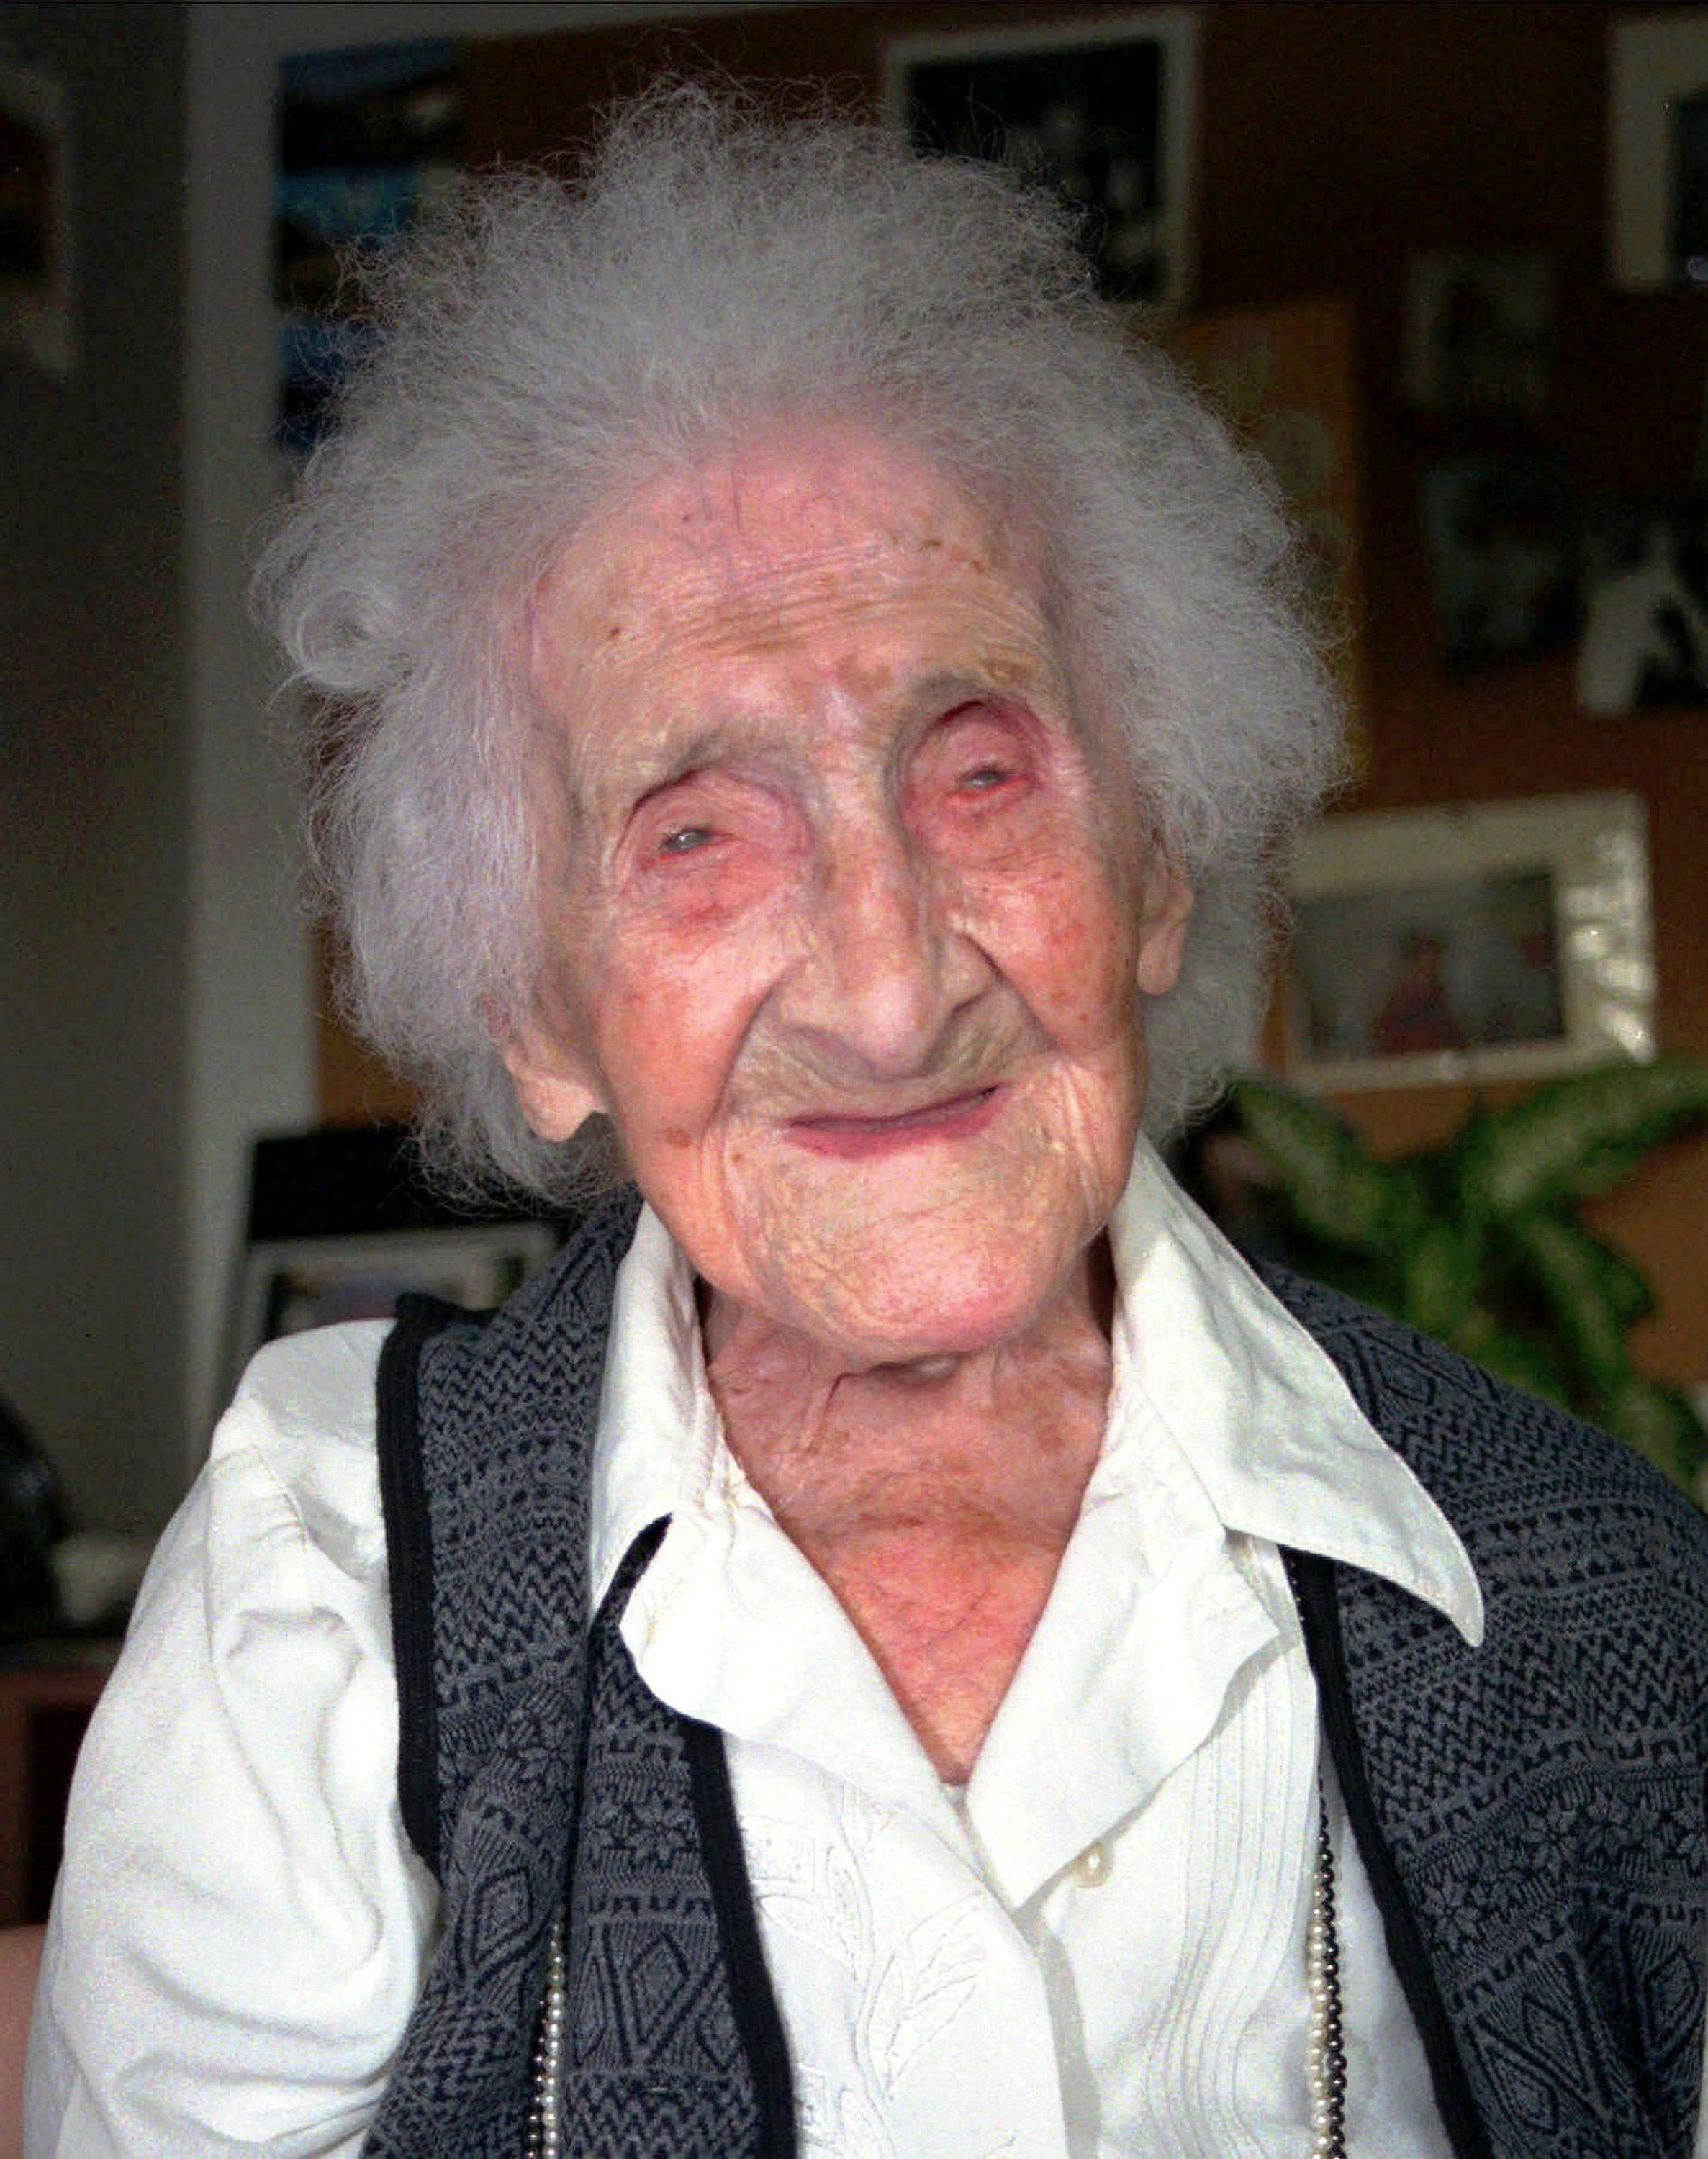 FILE - This Feb. 12, 1996 file photo shows Jeanne Calment in Arles, France. Believed to be the world's oldest person, she died at the age of 122 in 1997. New research published in the journal Nature on Wednesday, Oct. 5, 2016 suggests there's a limit to our life span and that the odds of breaking Calment's record are small. (AP Photo/File)